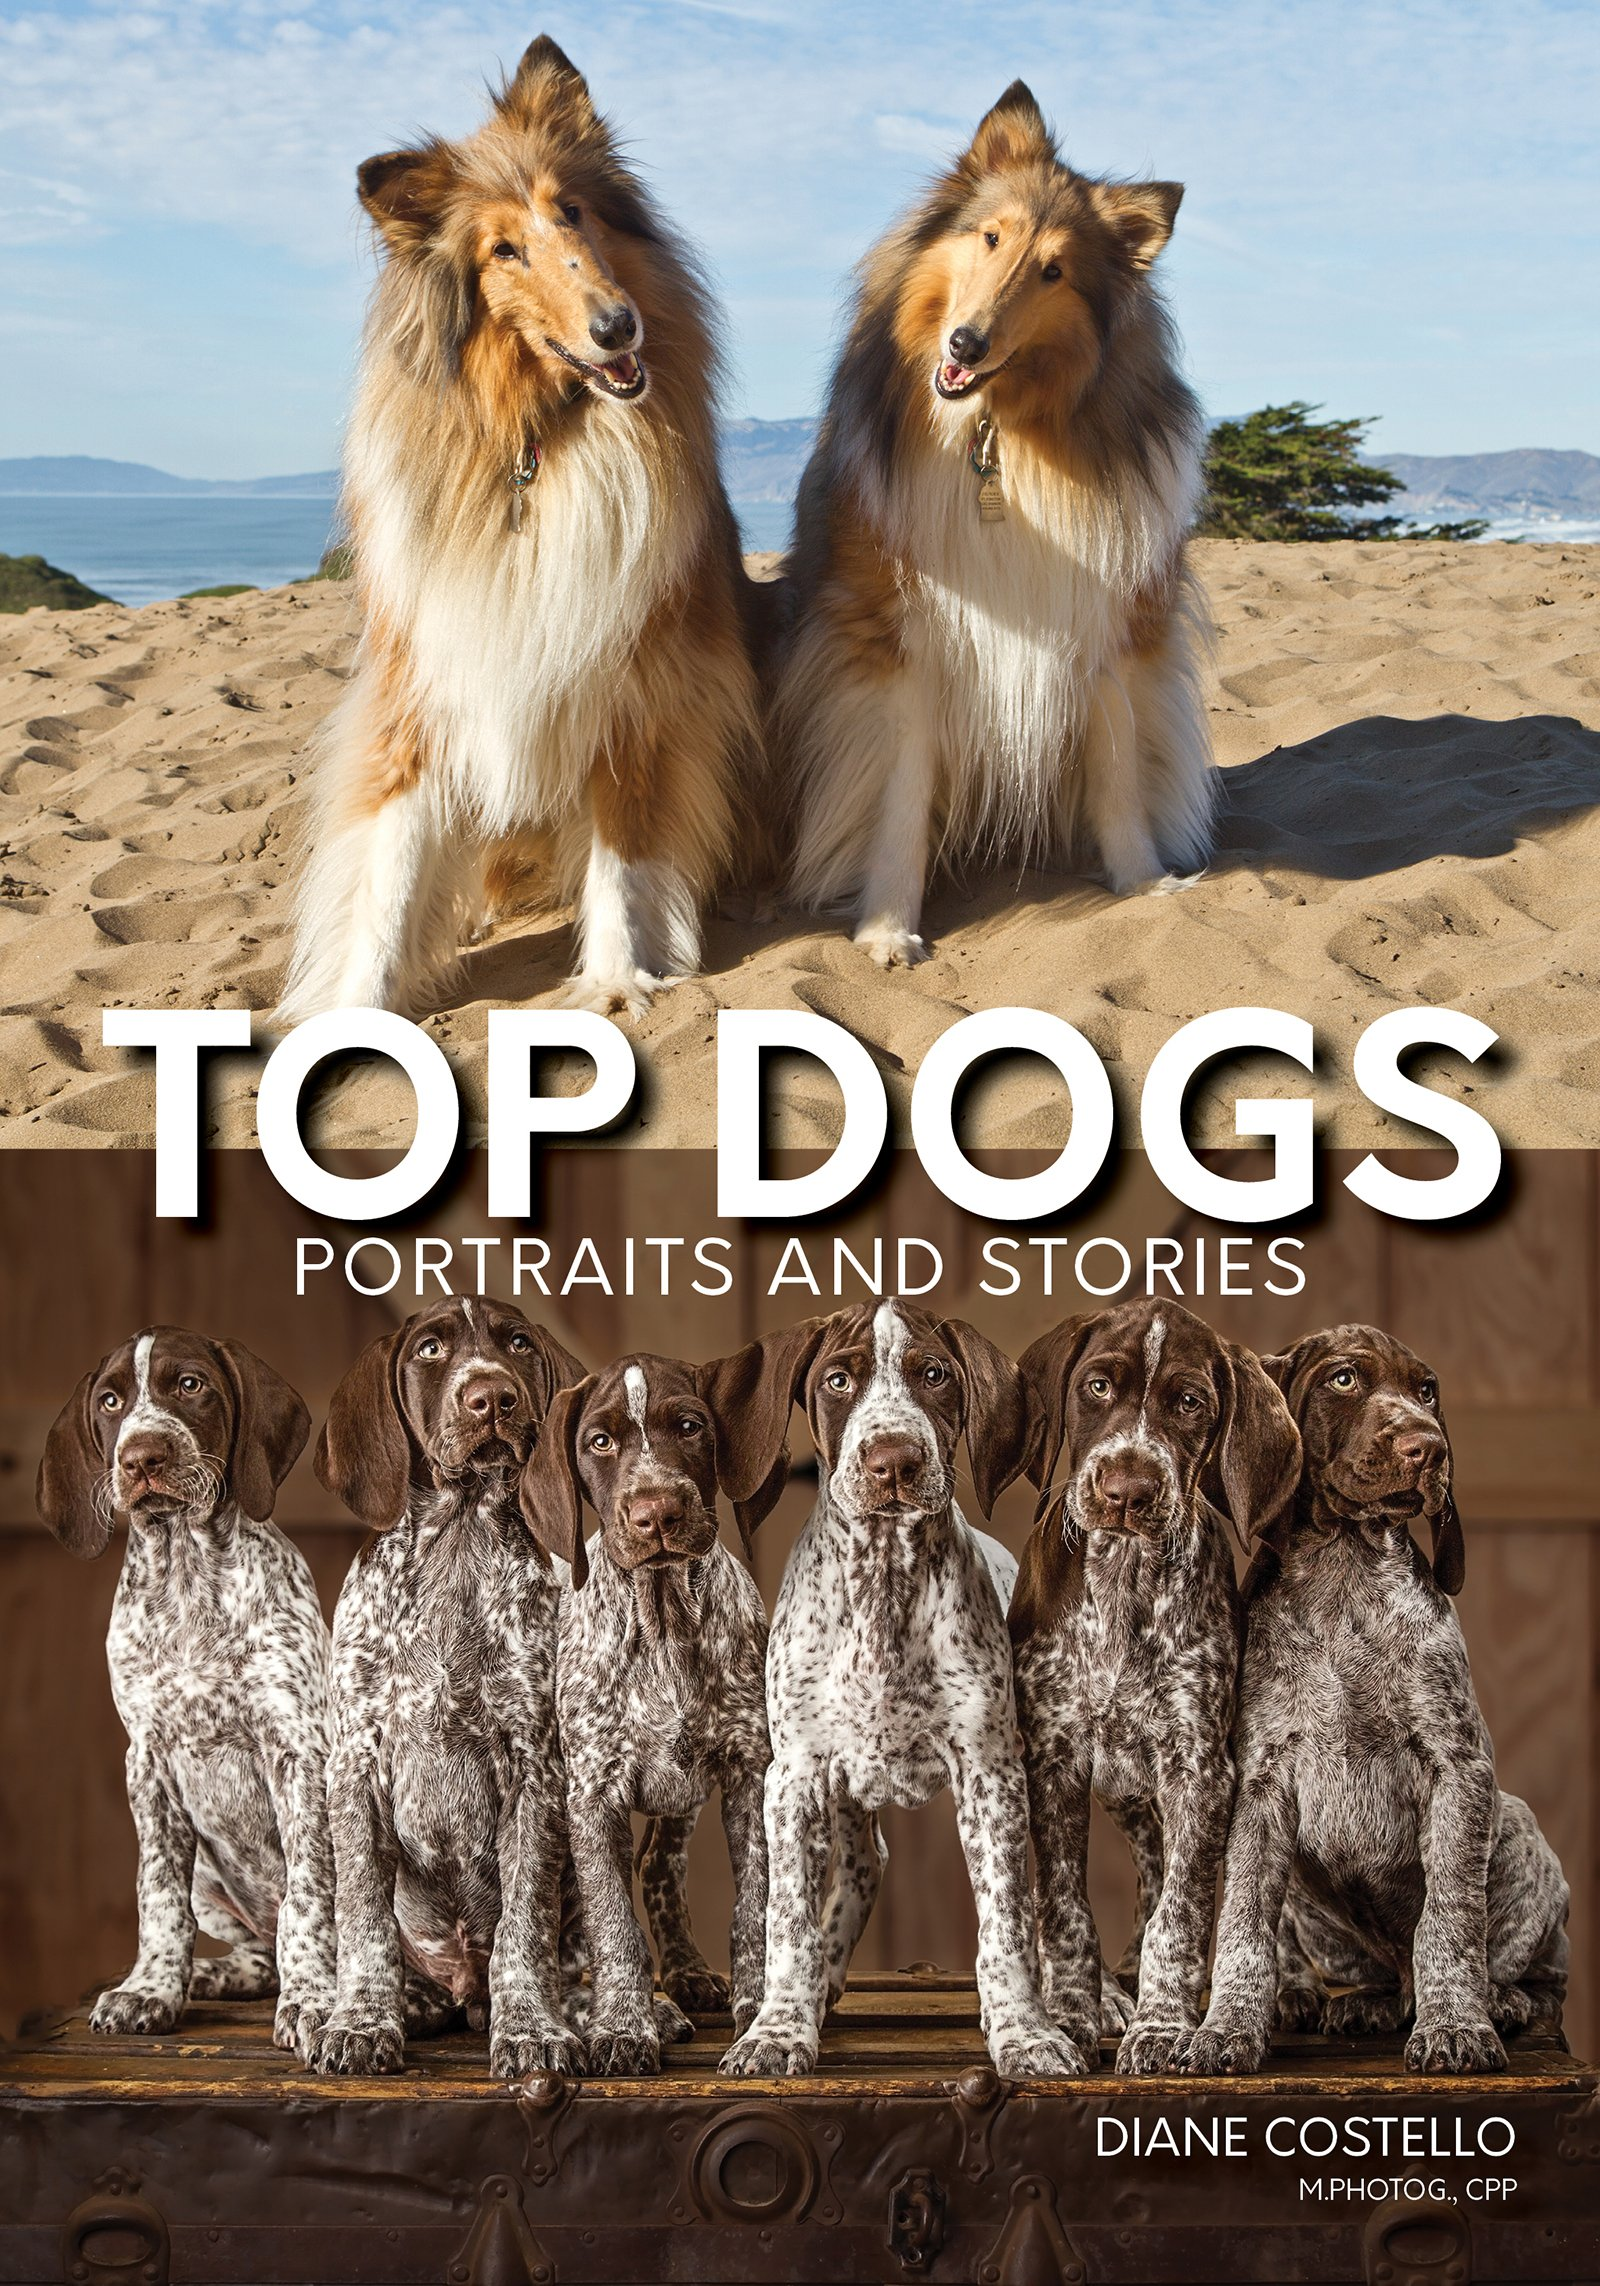 Top Dogs: Portraits and Stories